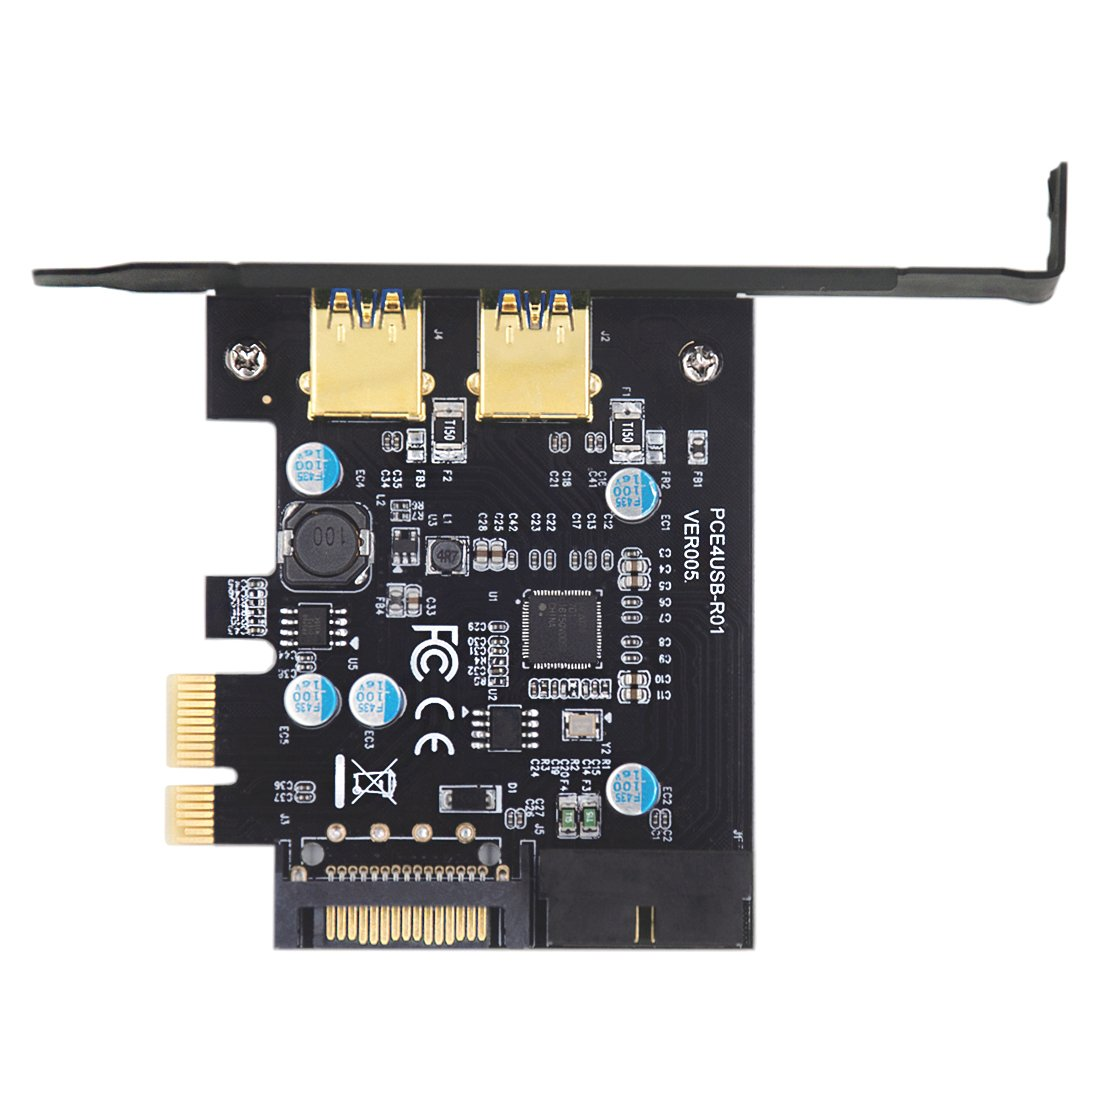 Mailiya PCI-E to USB 3.0 2-Port PCI Express Card,Mini PCI-E USB 3.0 Hub Controller Adapter 15-Pin Power Connector 1 USB 3.0 20-Pin Connector - Expand Another Two USB 3.0 Ports by Mailiya (Image #2)